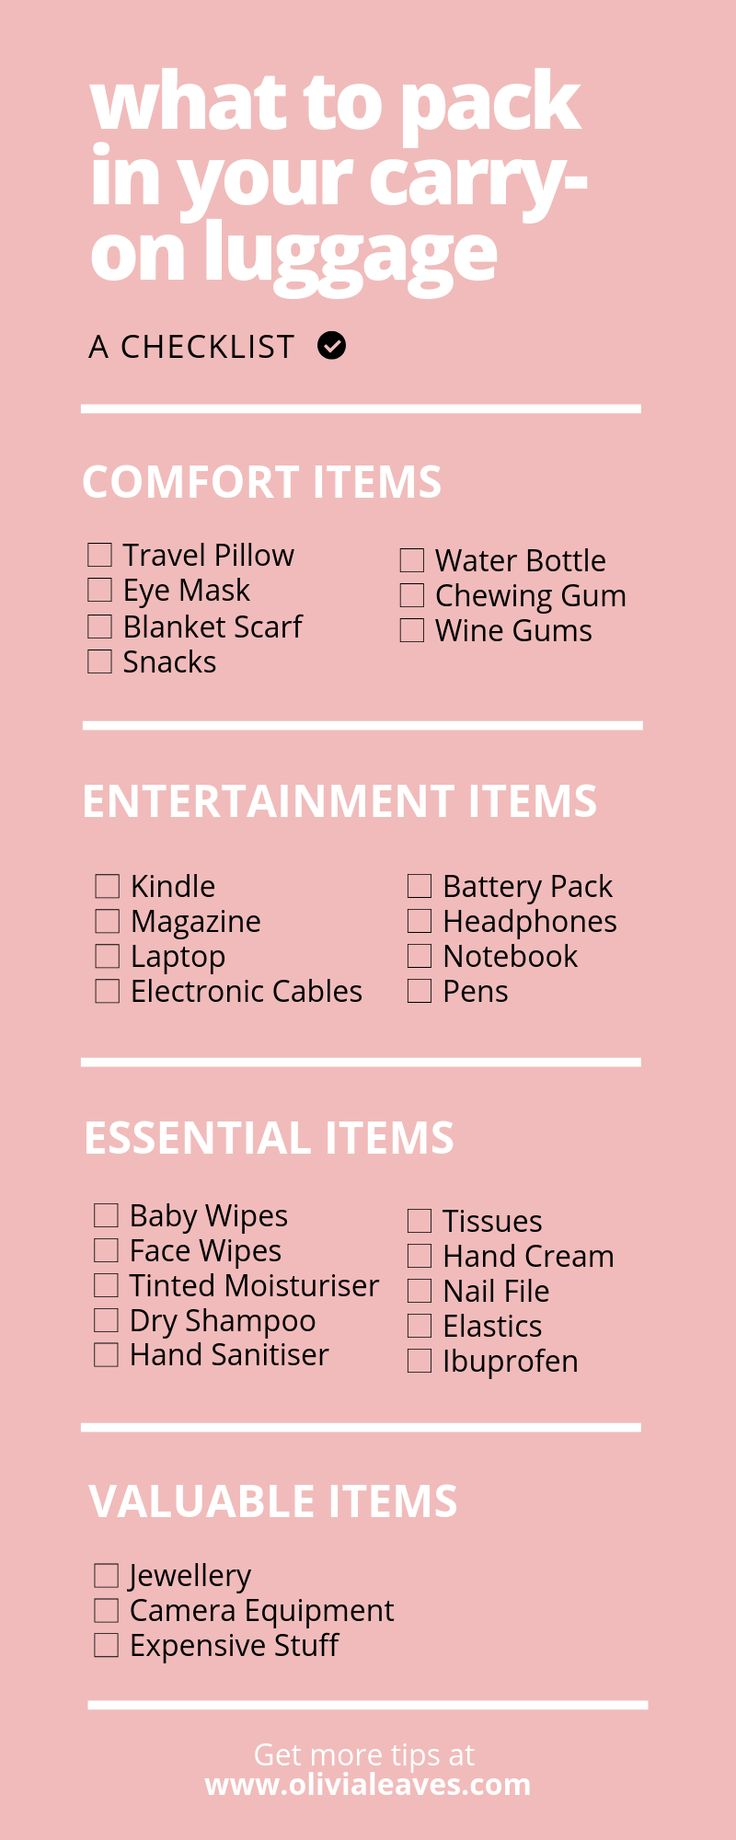 What should you pack in your carry-on luggage? Her…